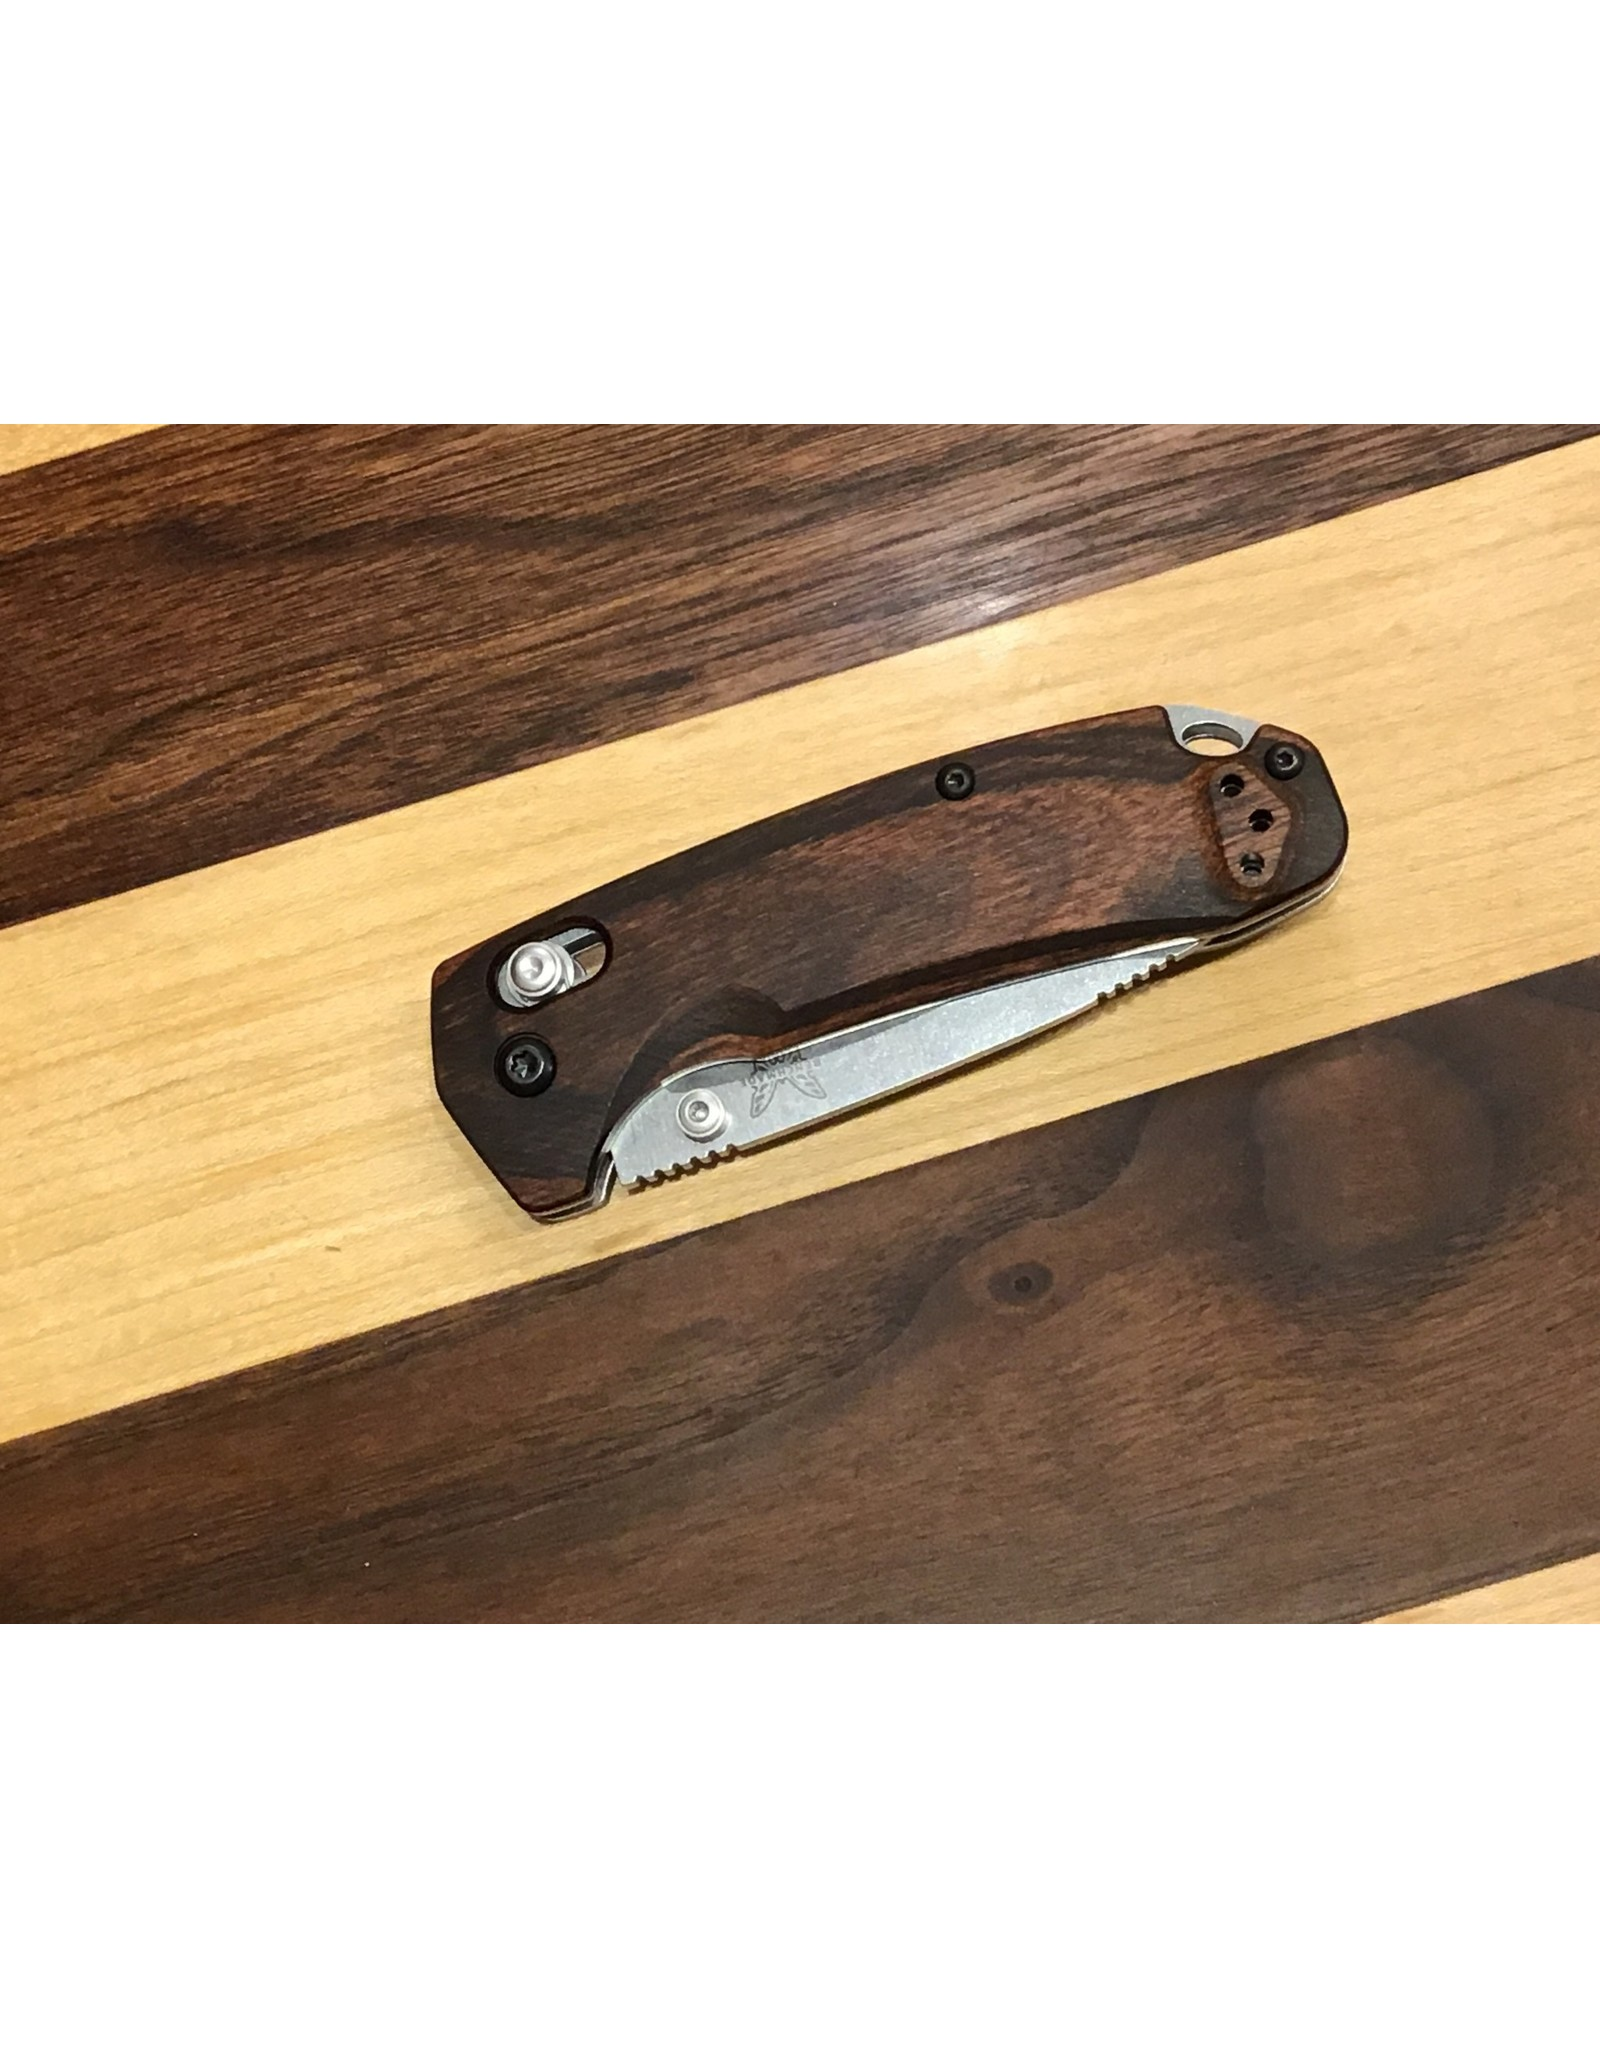 Benchmade North Fork 15031-2